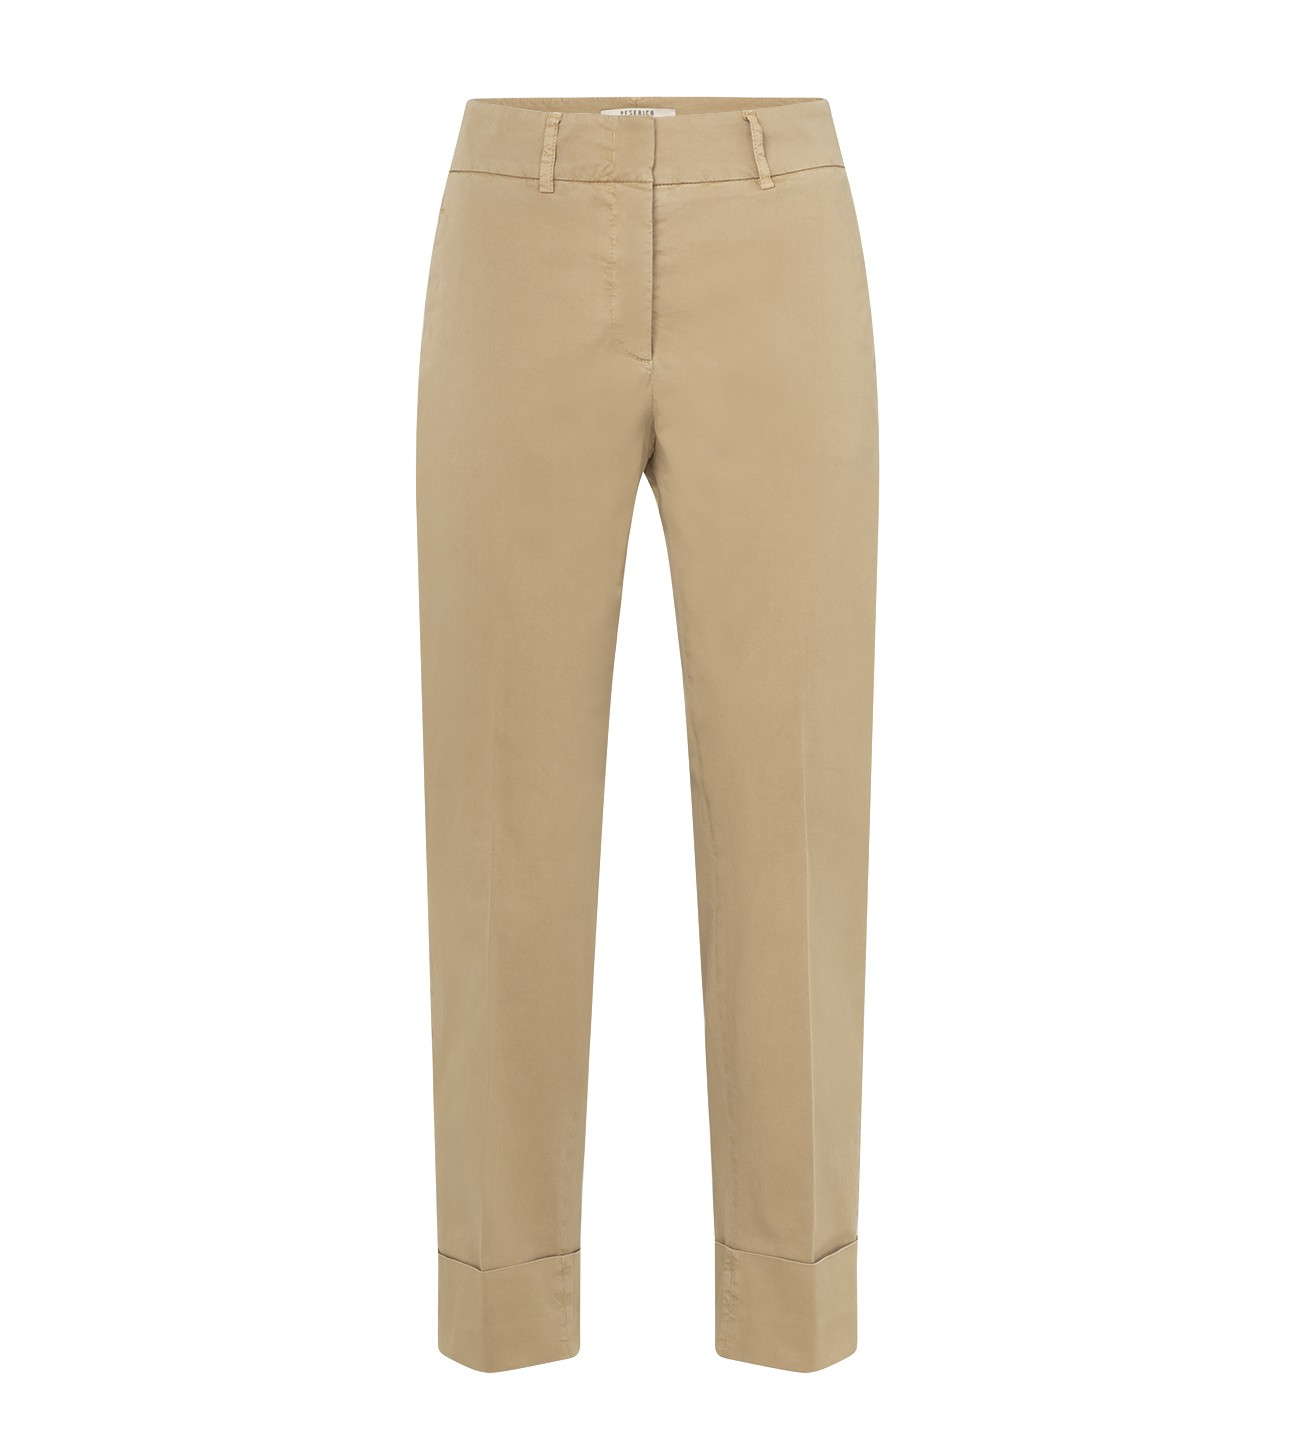 CAPPELLINI_COTTON_TROUSERS_WITH_TURNED_UP_CUFFS_MARIONA_FASHION_CLOTHING_WOMAN_SHOP_ONLINE_M04740T3